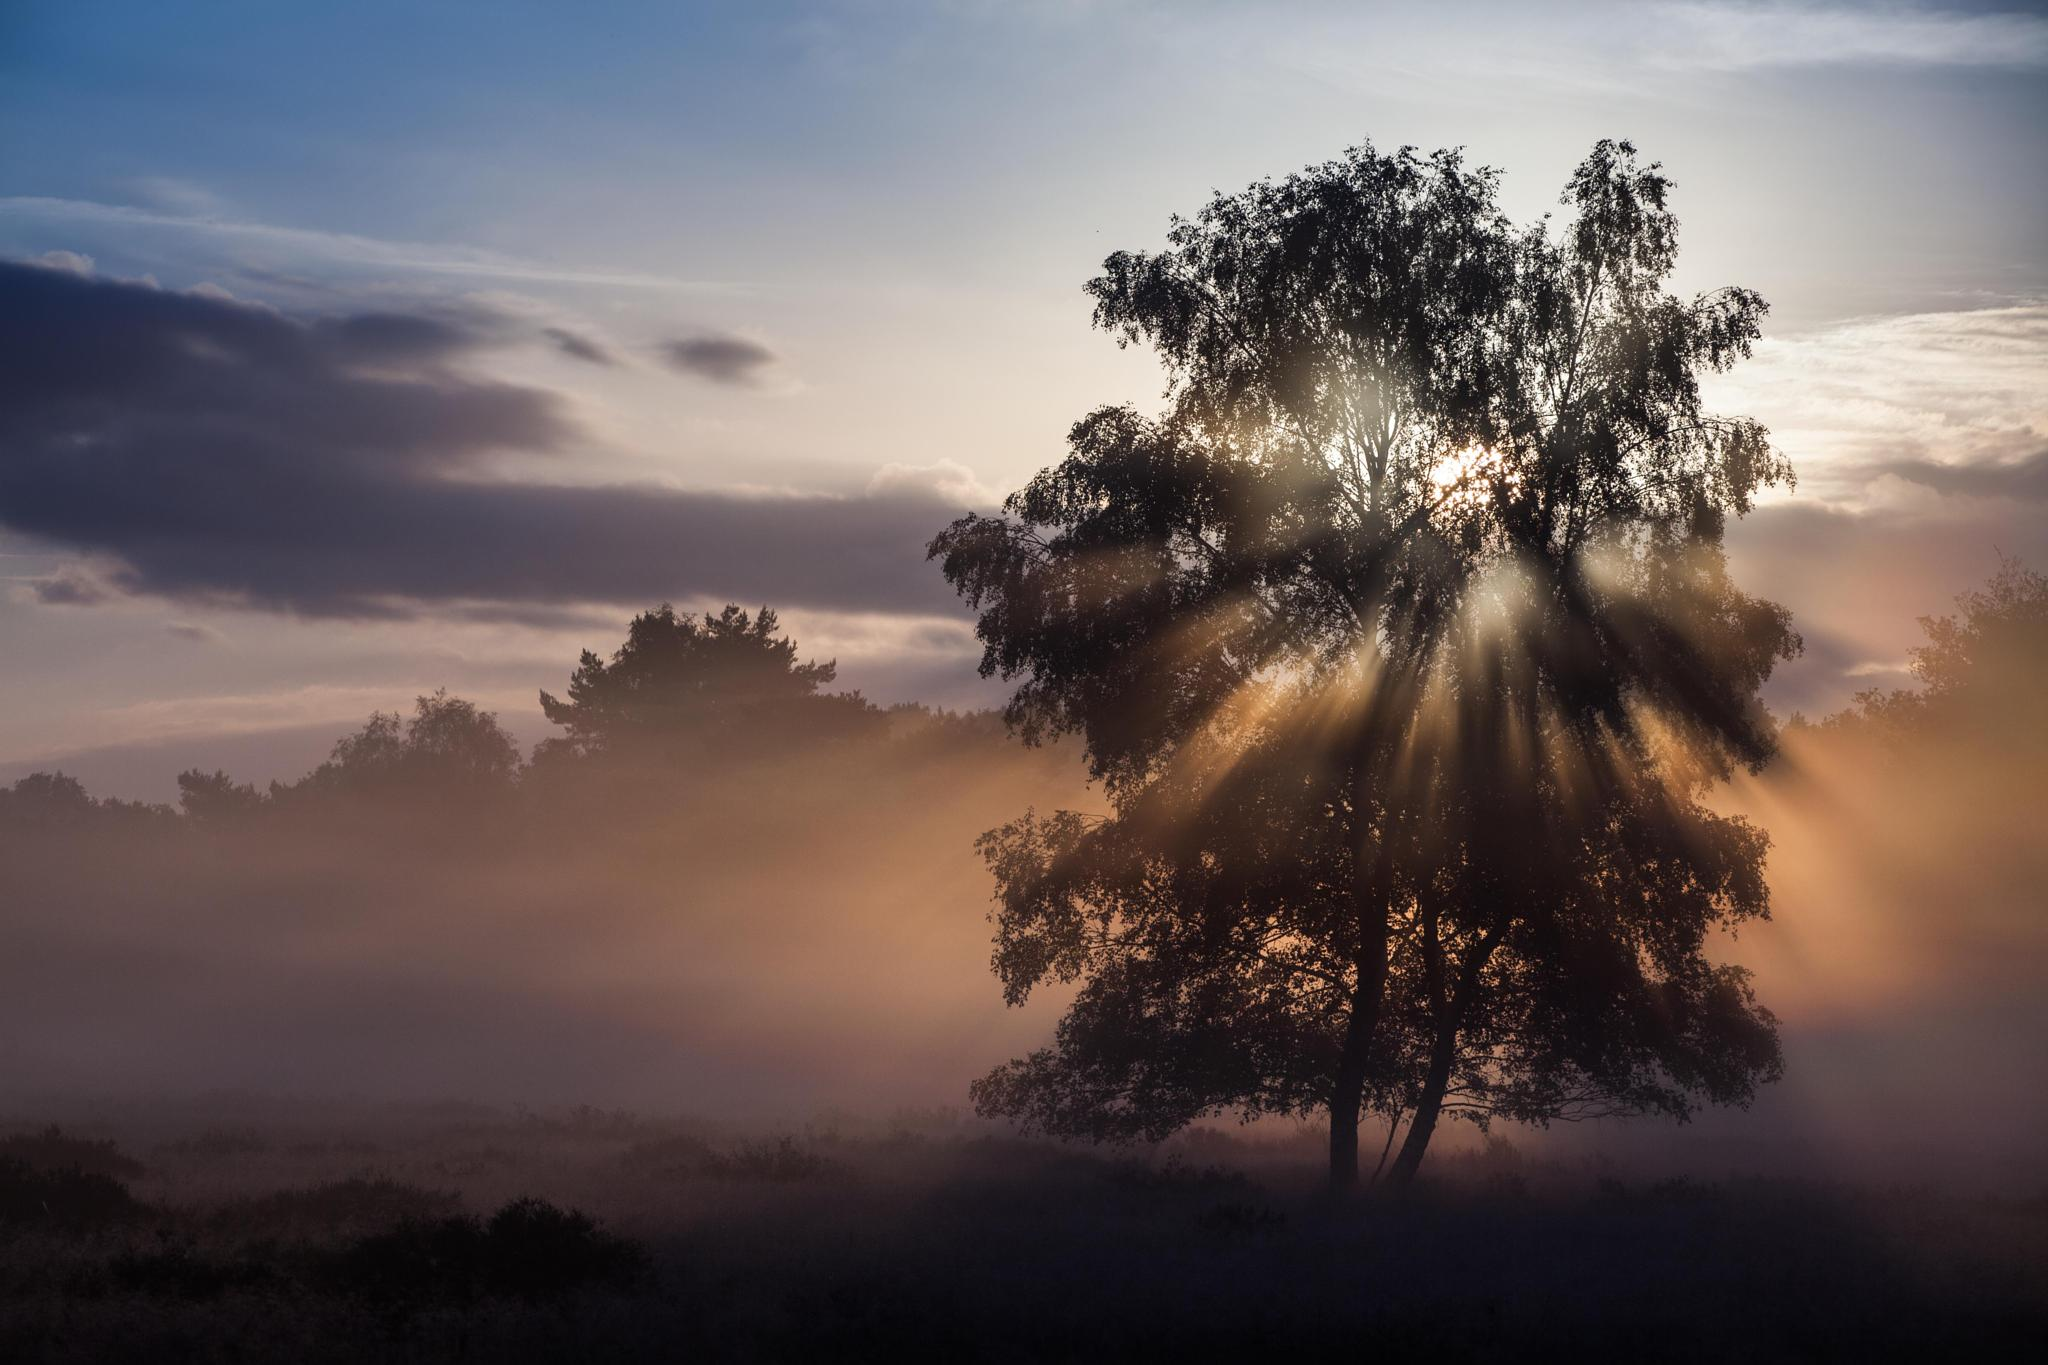 Chasing the light by Hans Koster